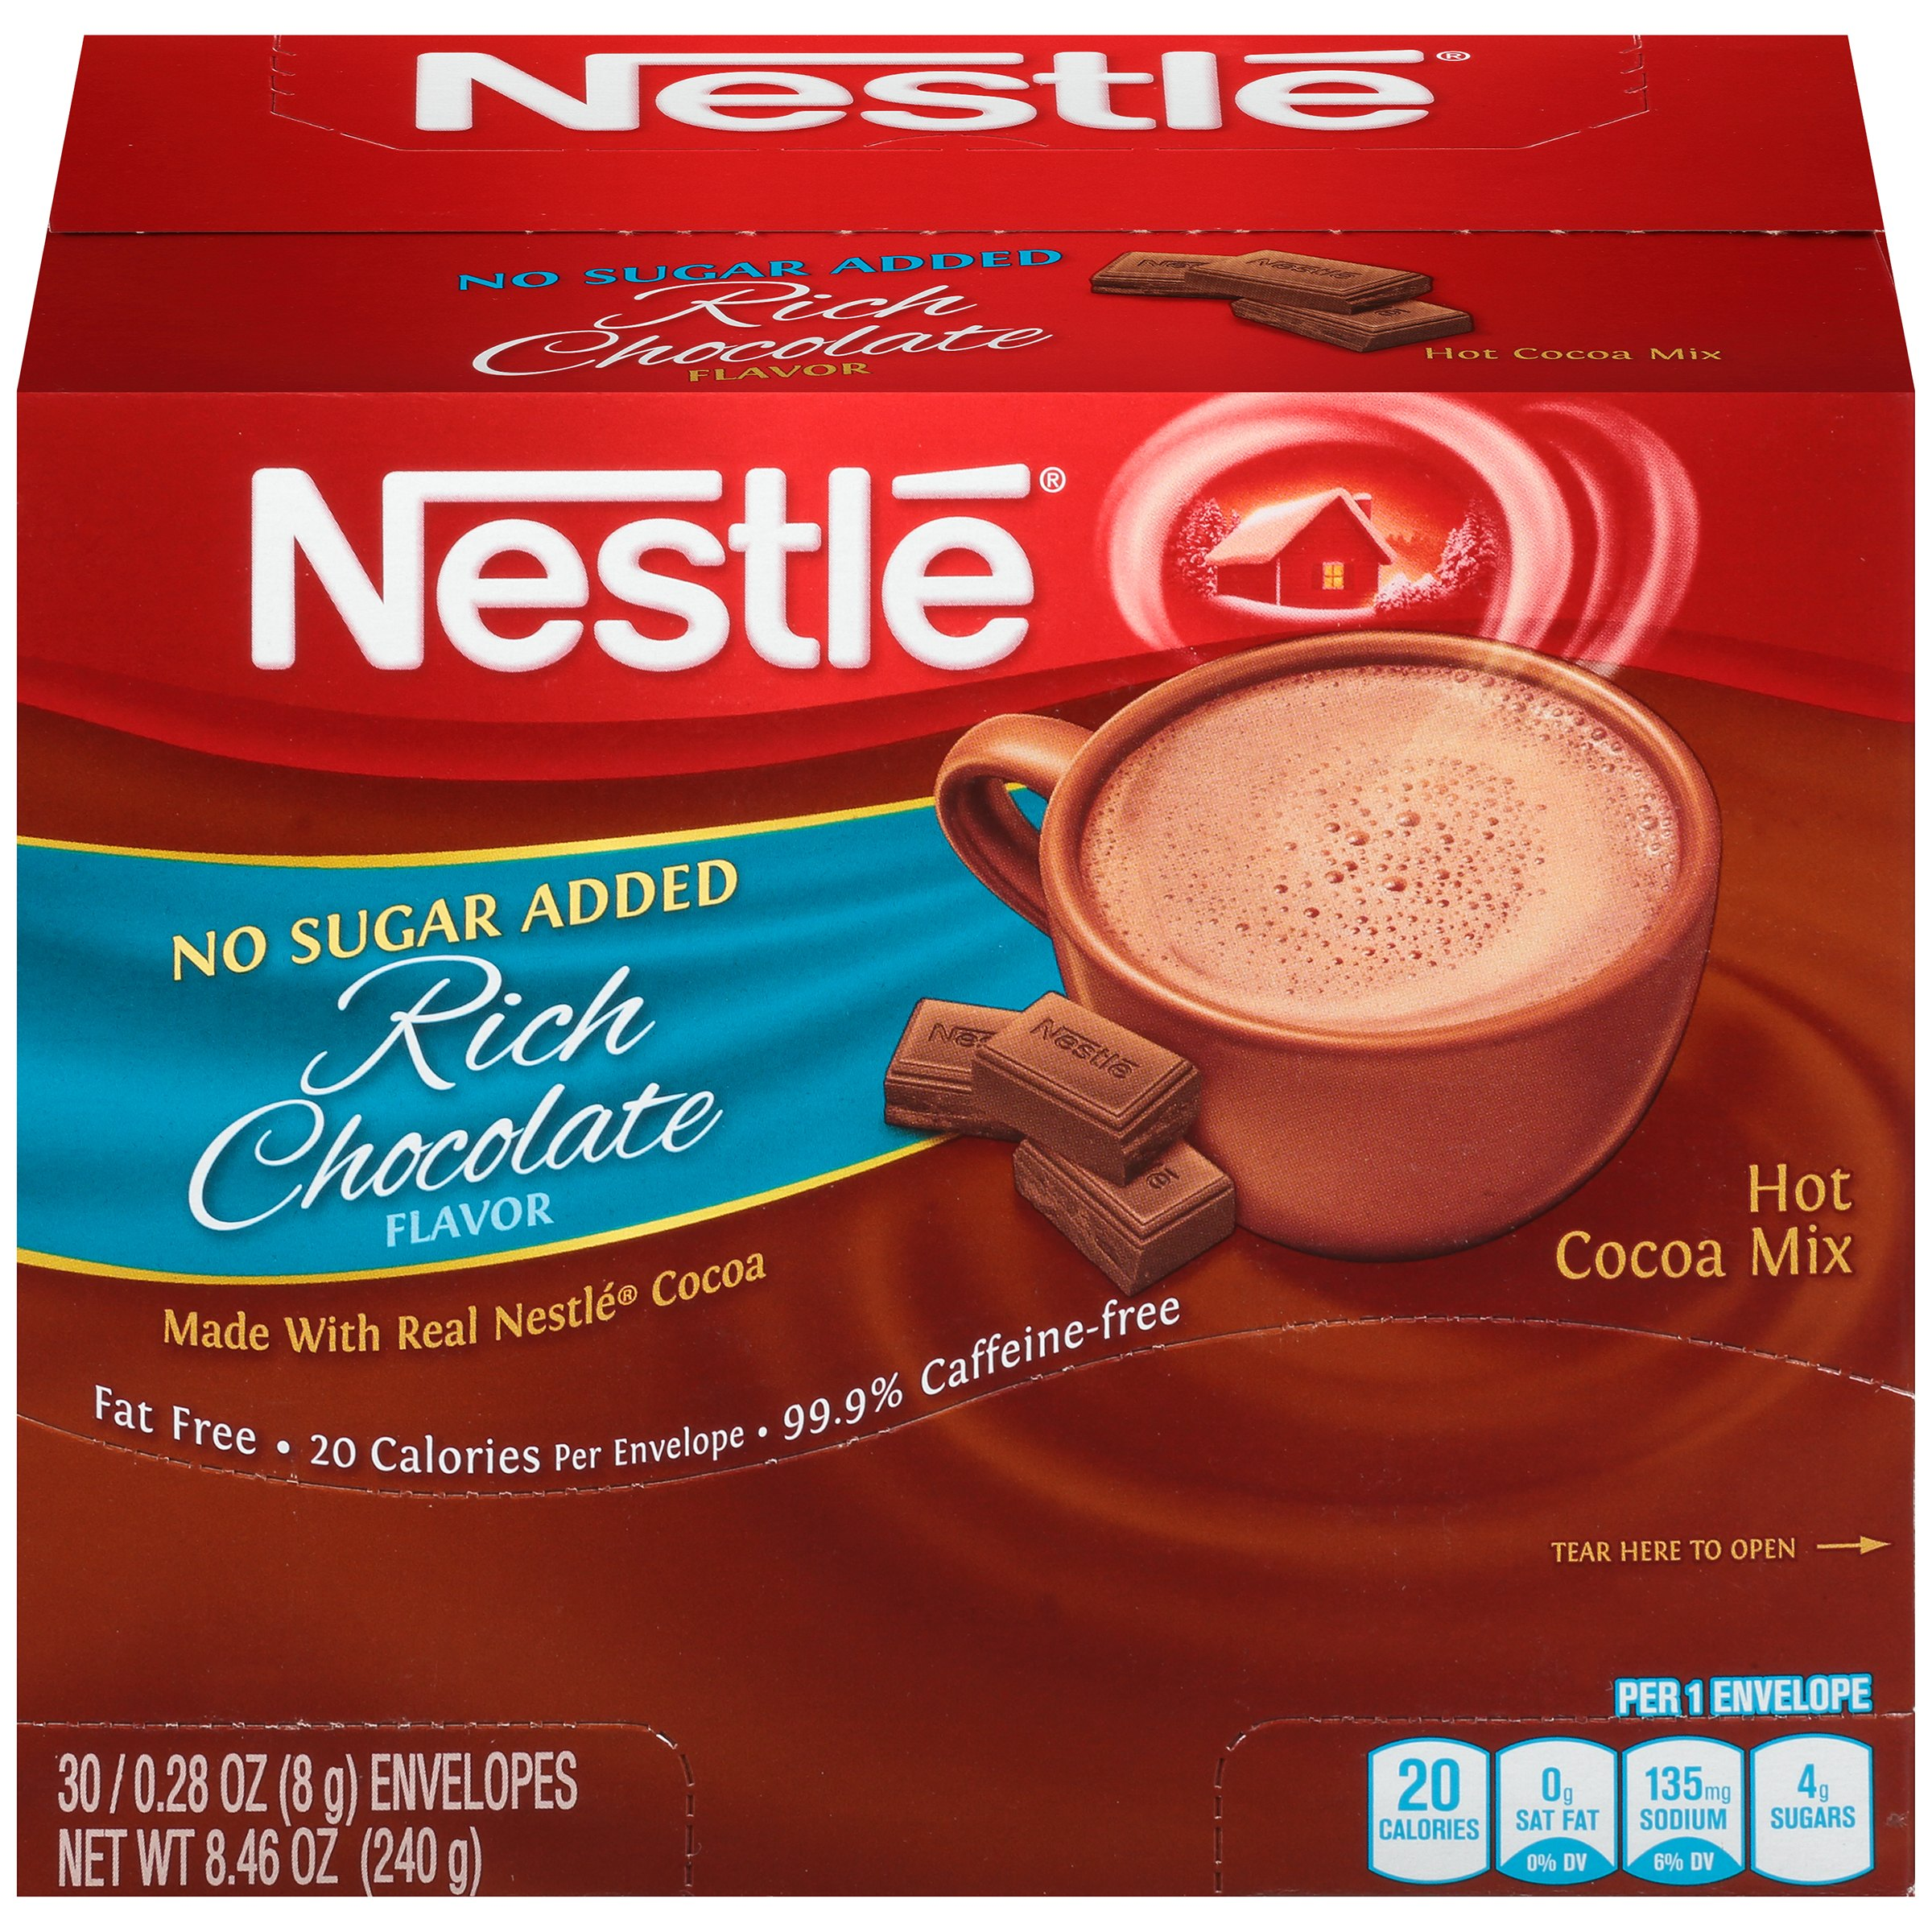 Nestlé No Sugar Added Rich Chocolate Hot Cocoa Mix 30-0.28 oz. Envelopes